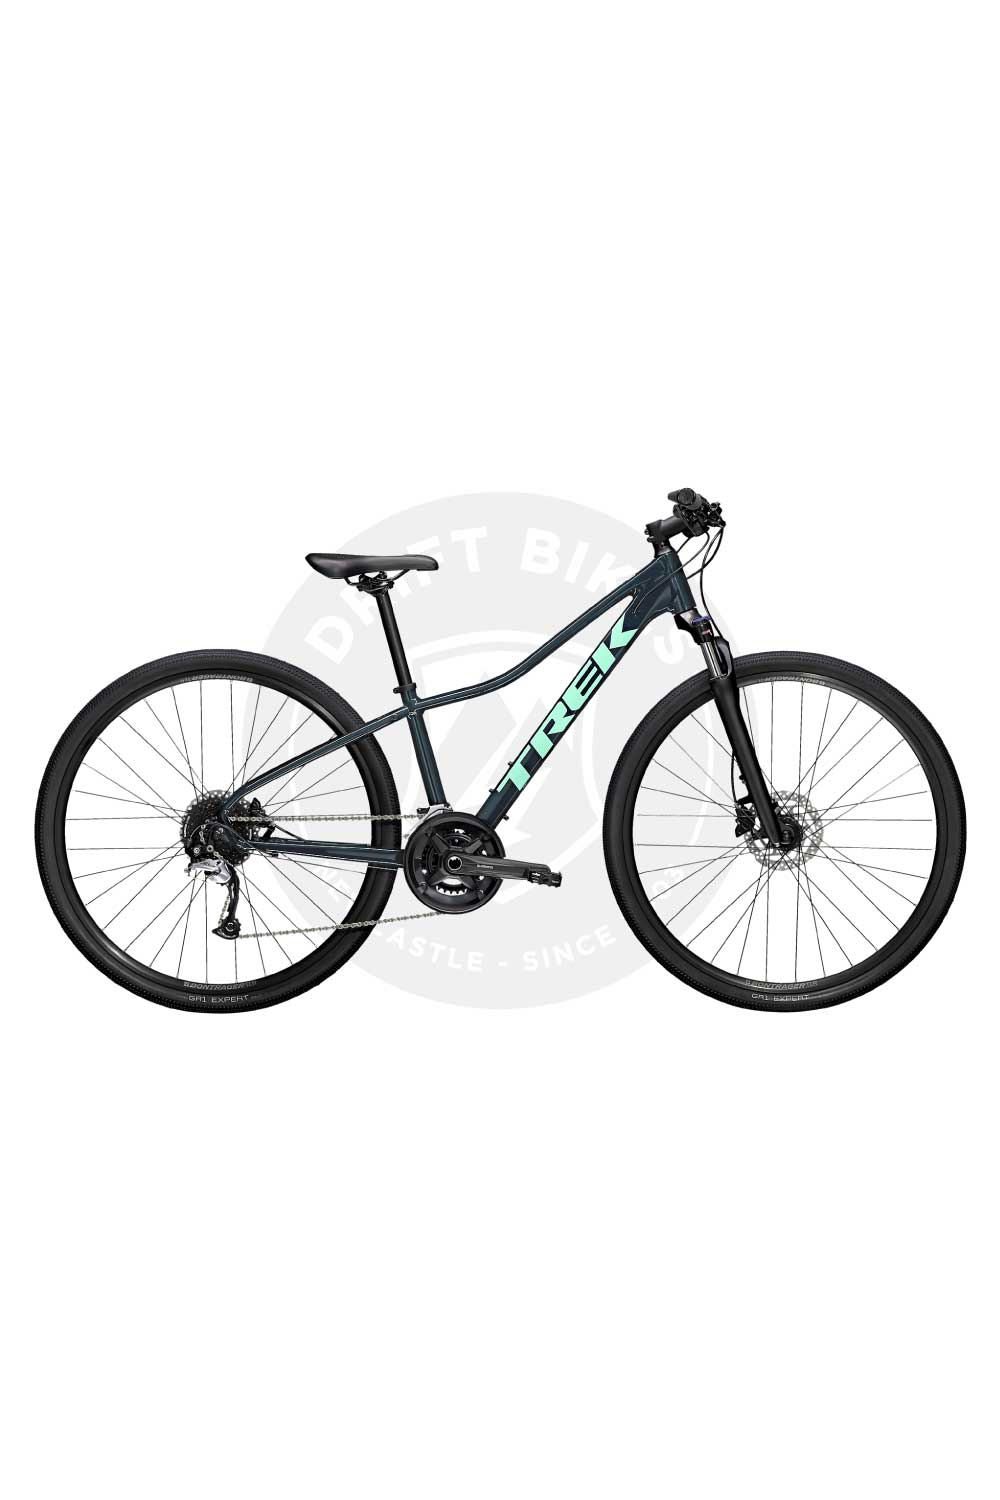 Trek 2021 Dual Sport 3 Women's Fitness Bike